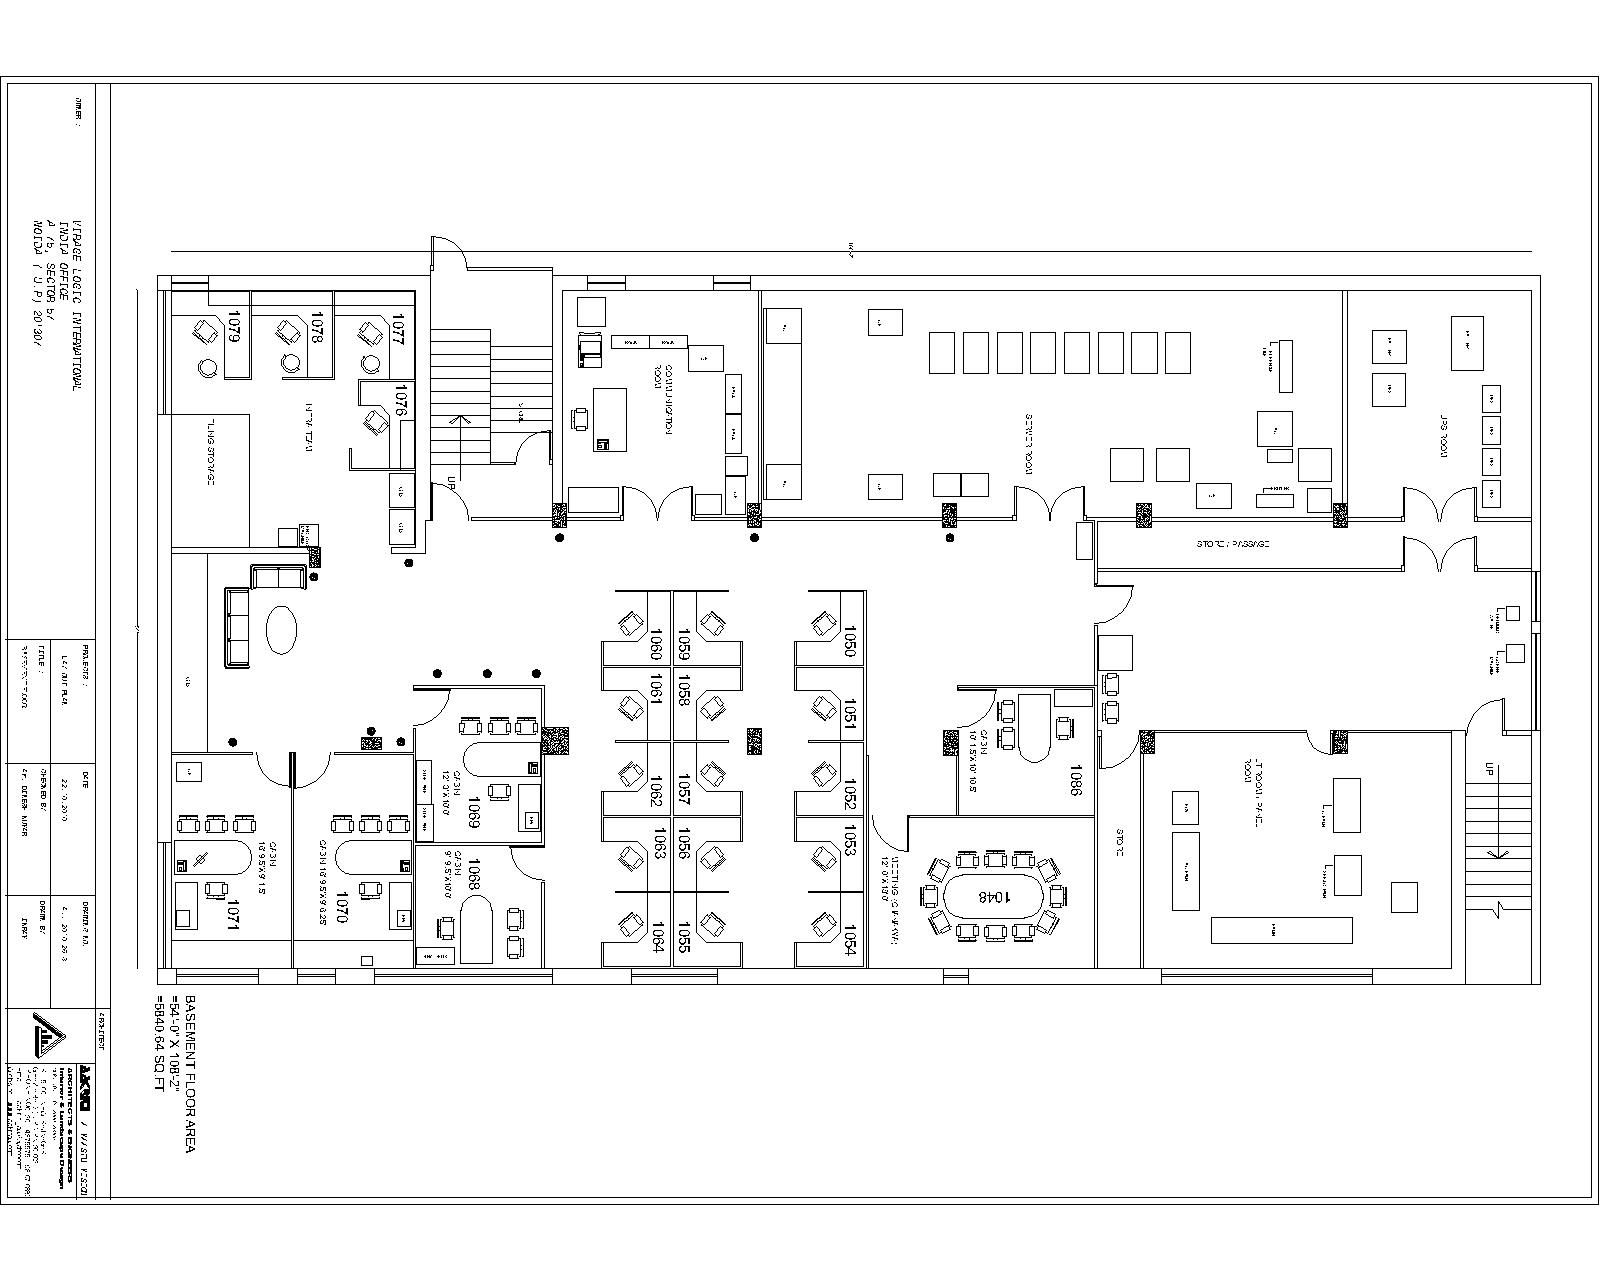 awesome basement floor plans for entertainment spaces exciting awesome basement floor plans for entertainment spaces exciting basement floor plans with interior design and